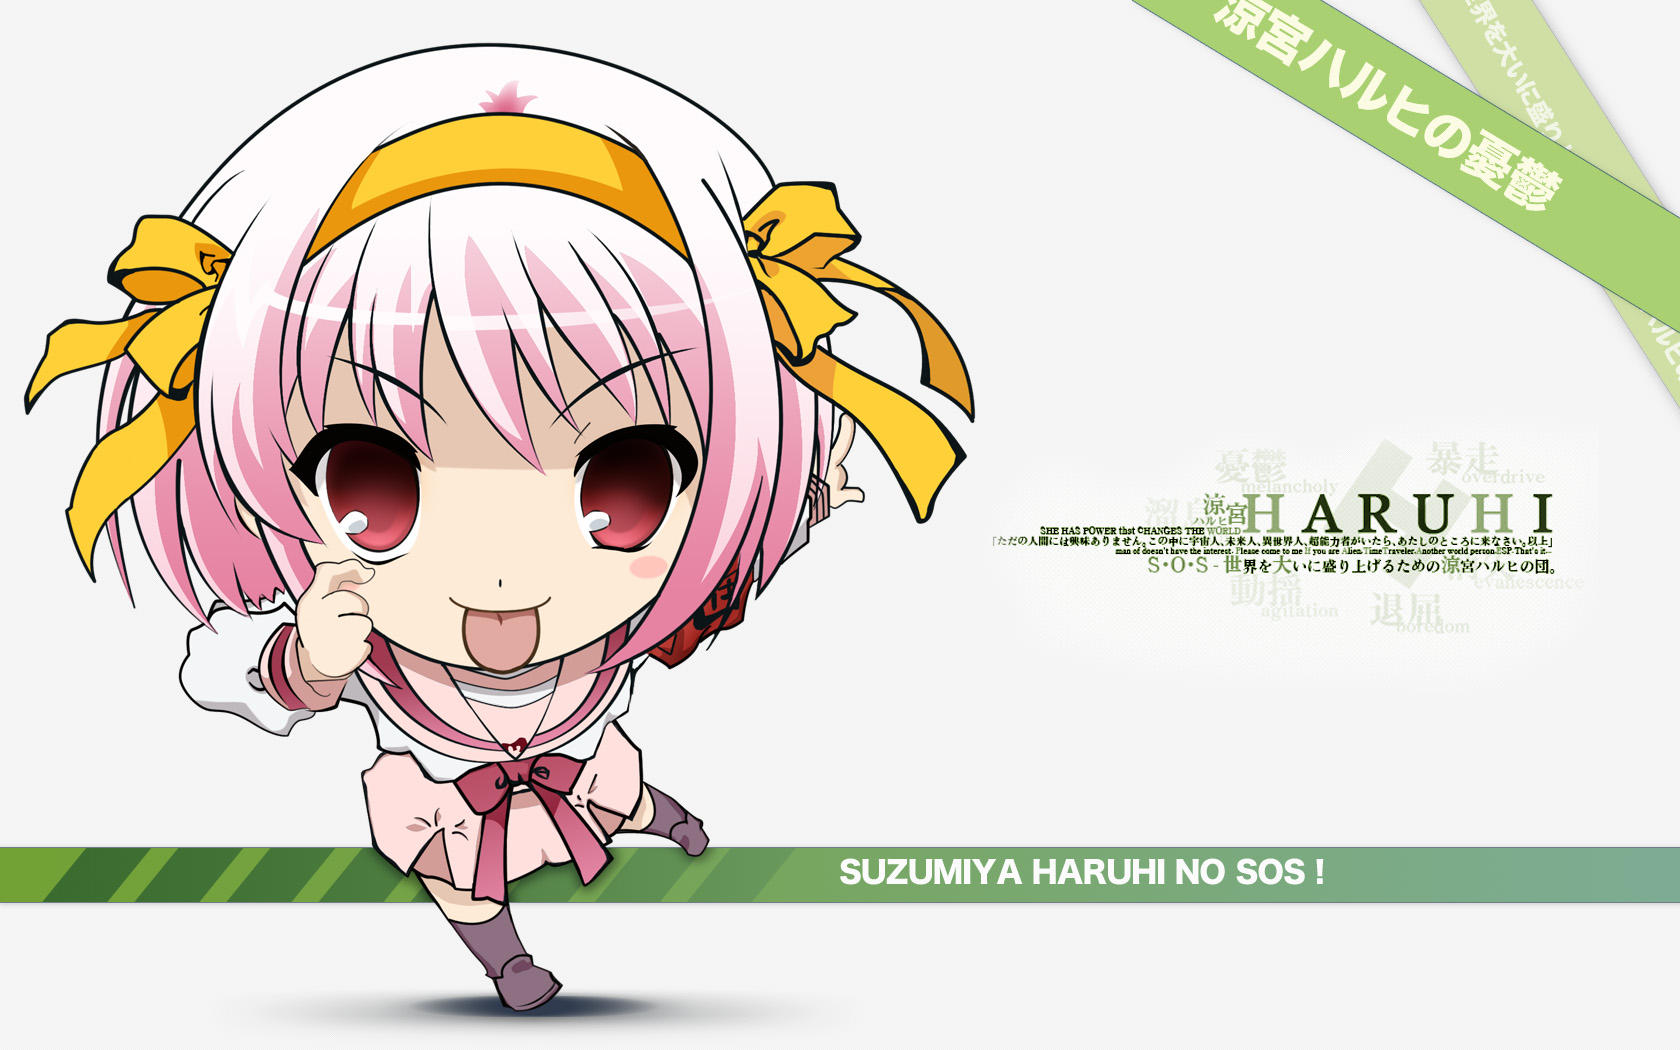 HARUHI_PINK.ver by xipx